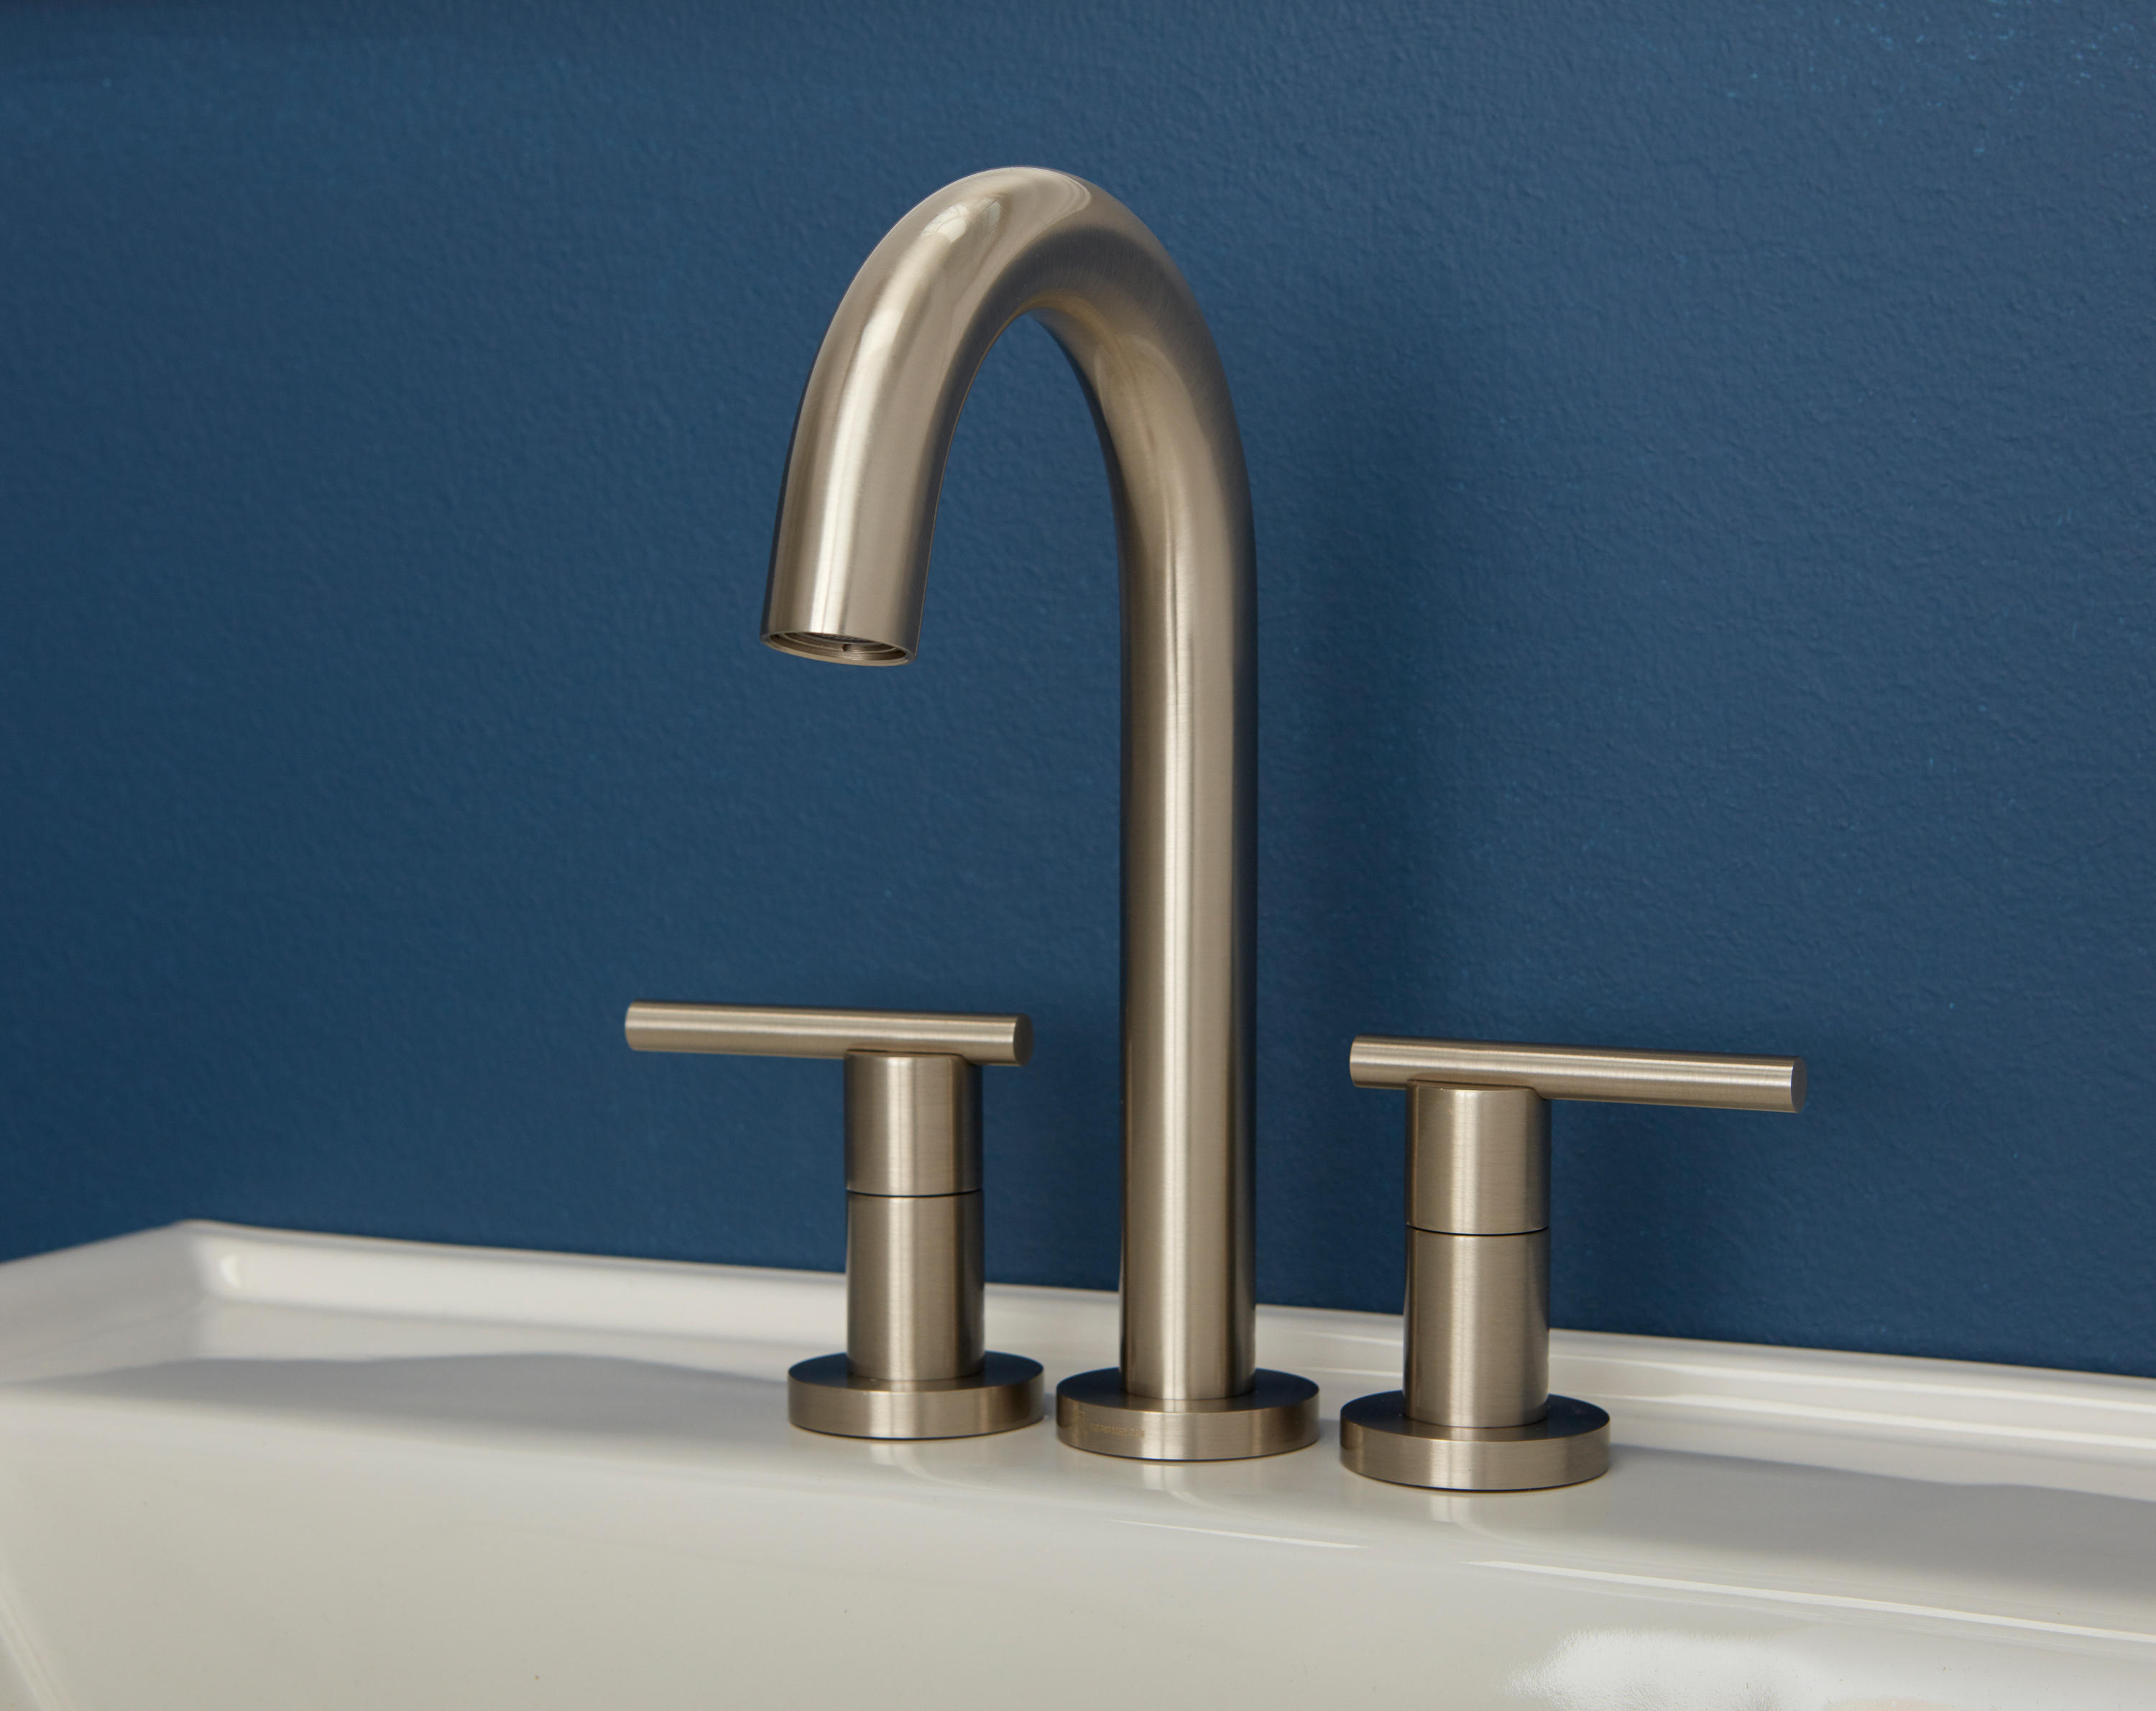 Danze Rosemont Pull Down Kitchen Faucet